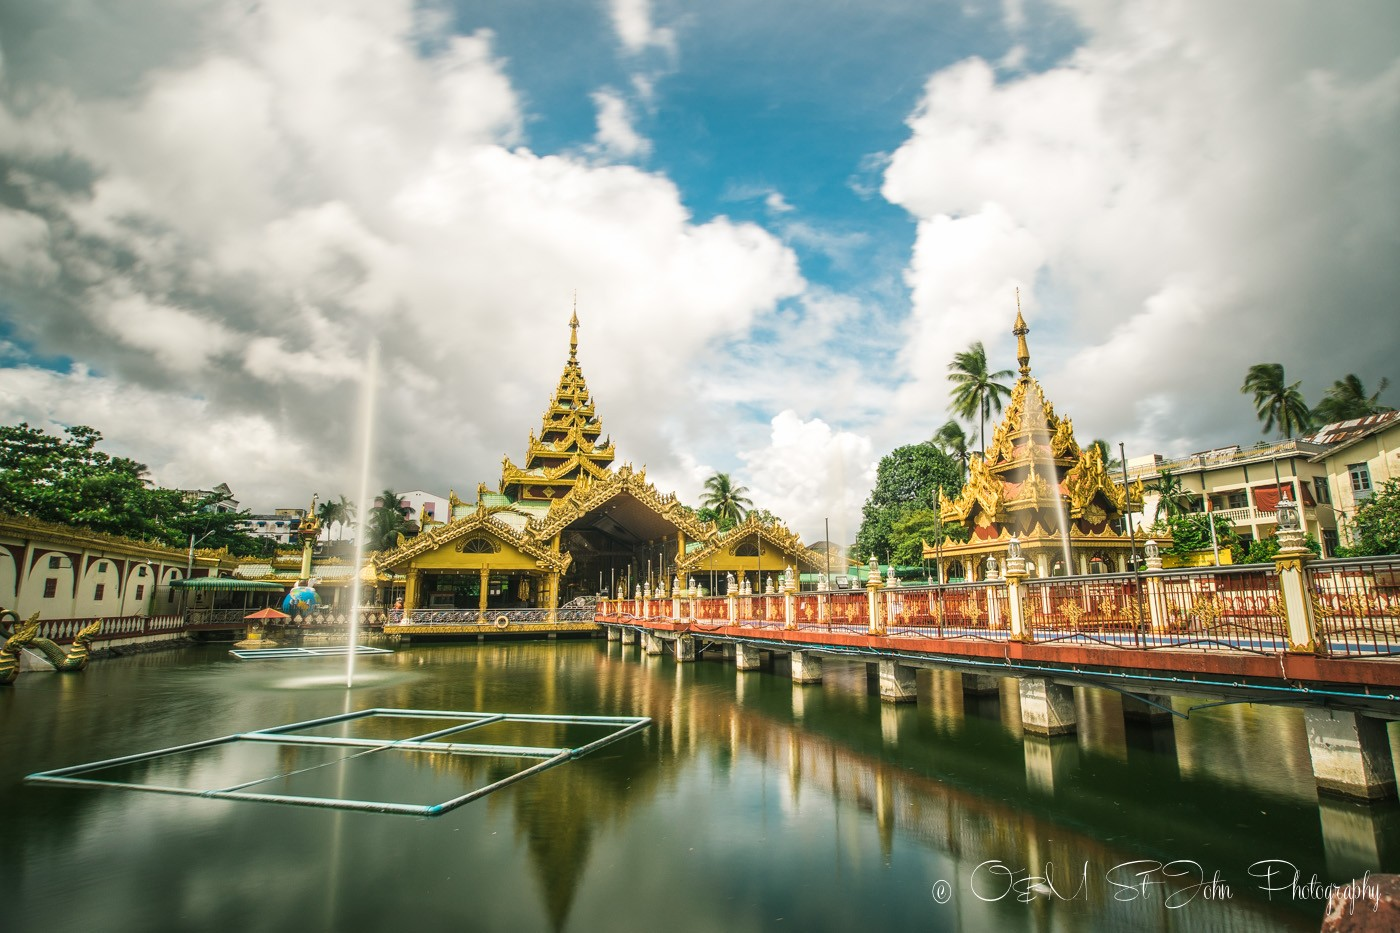 Kyay Thone Pagoda, just another stunning sight in Yangon. Myanmar